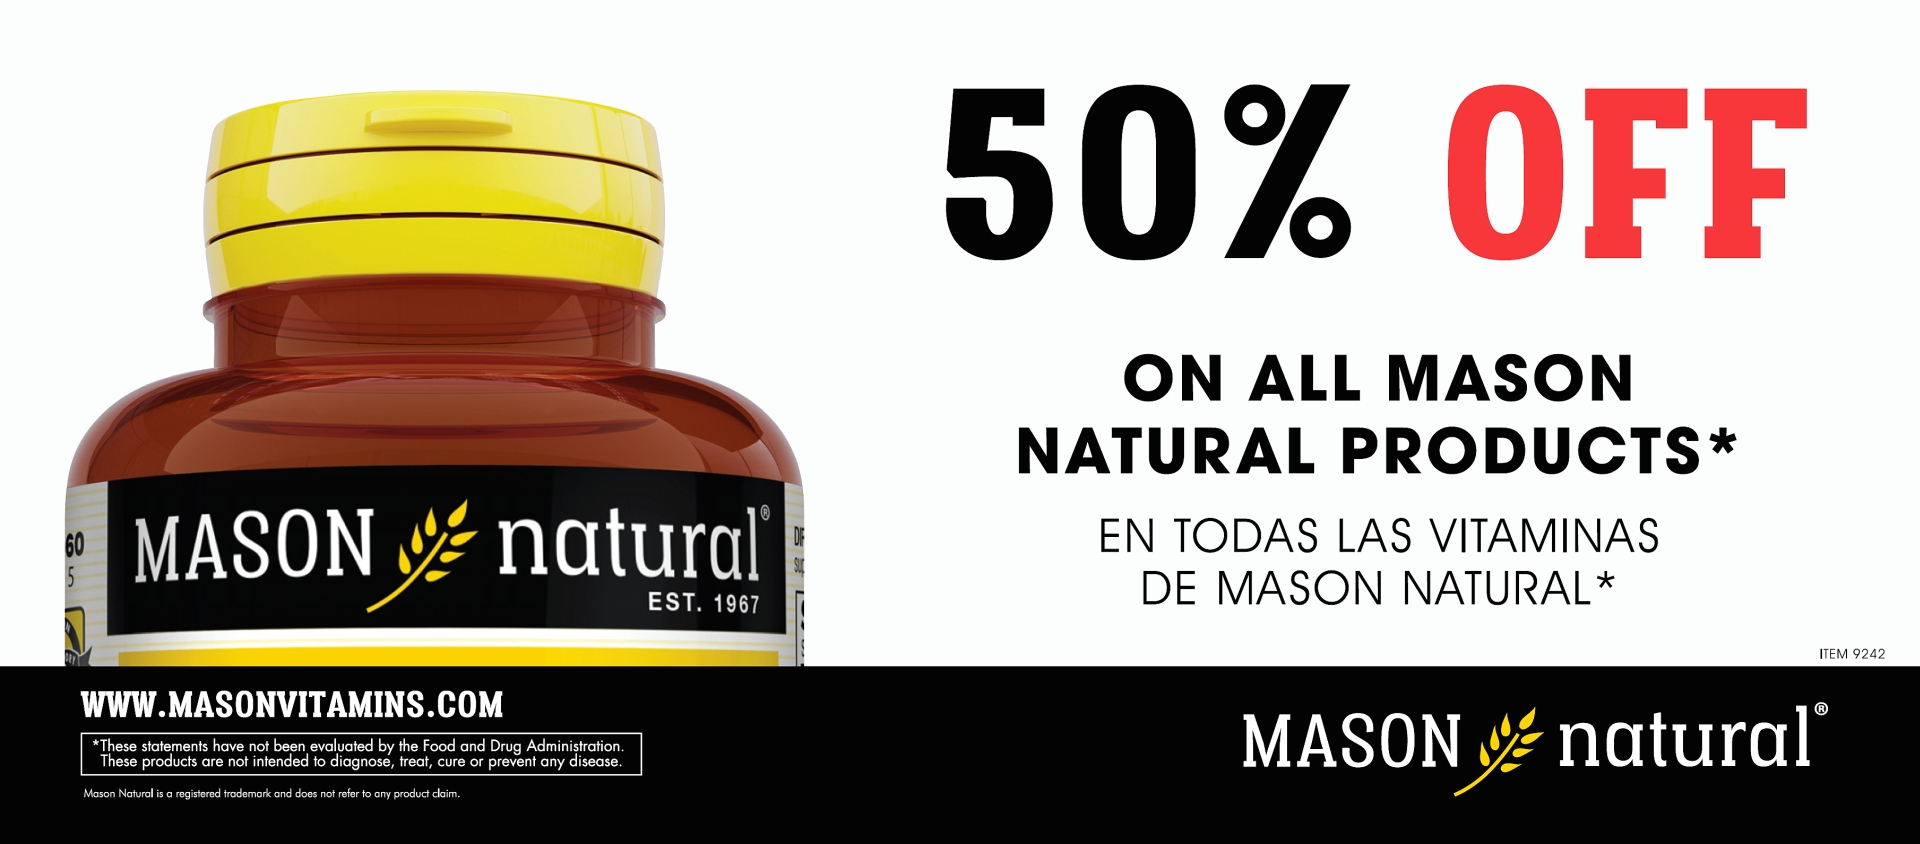 MasoN Special 50% Savings On All Mason Natural Vitamins